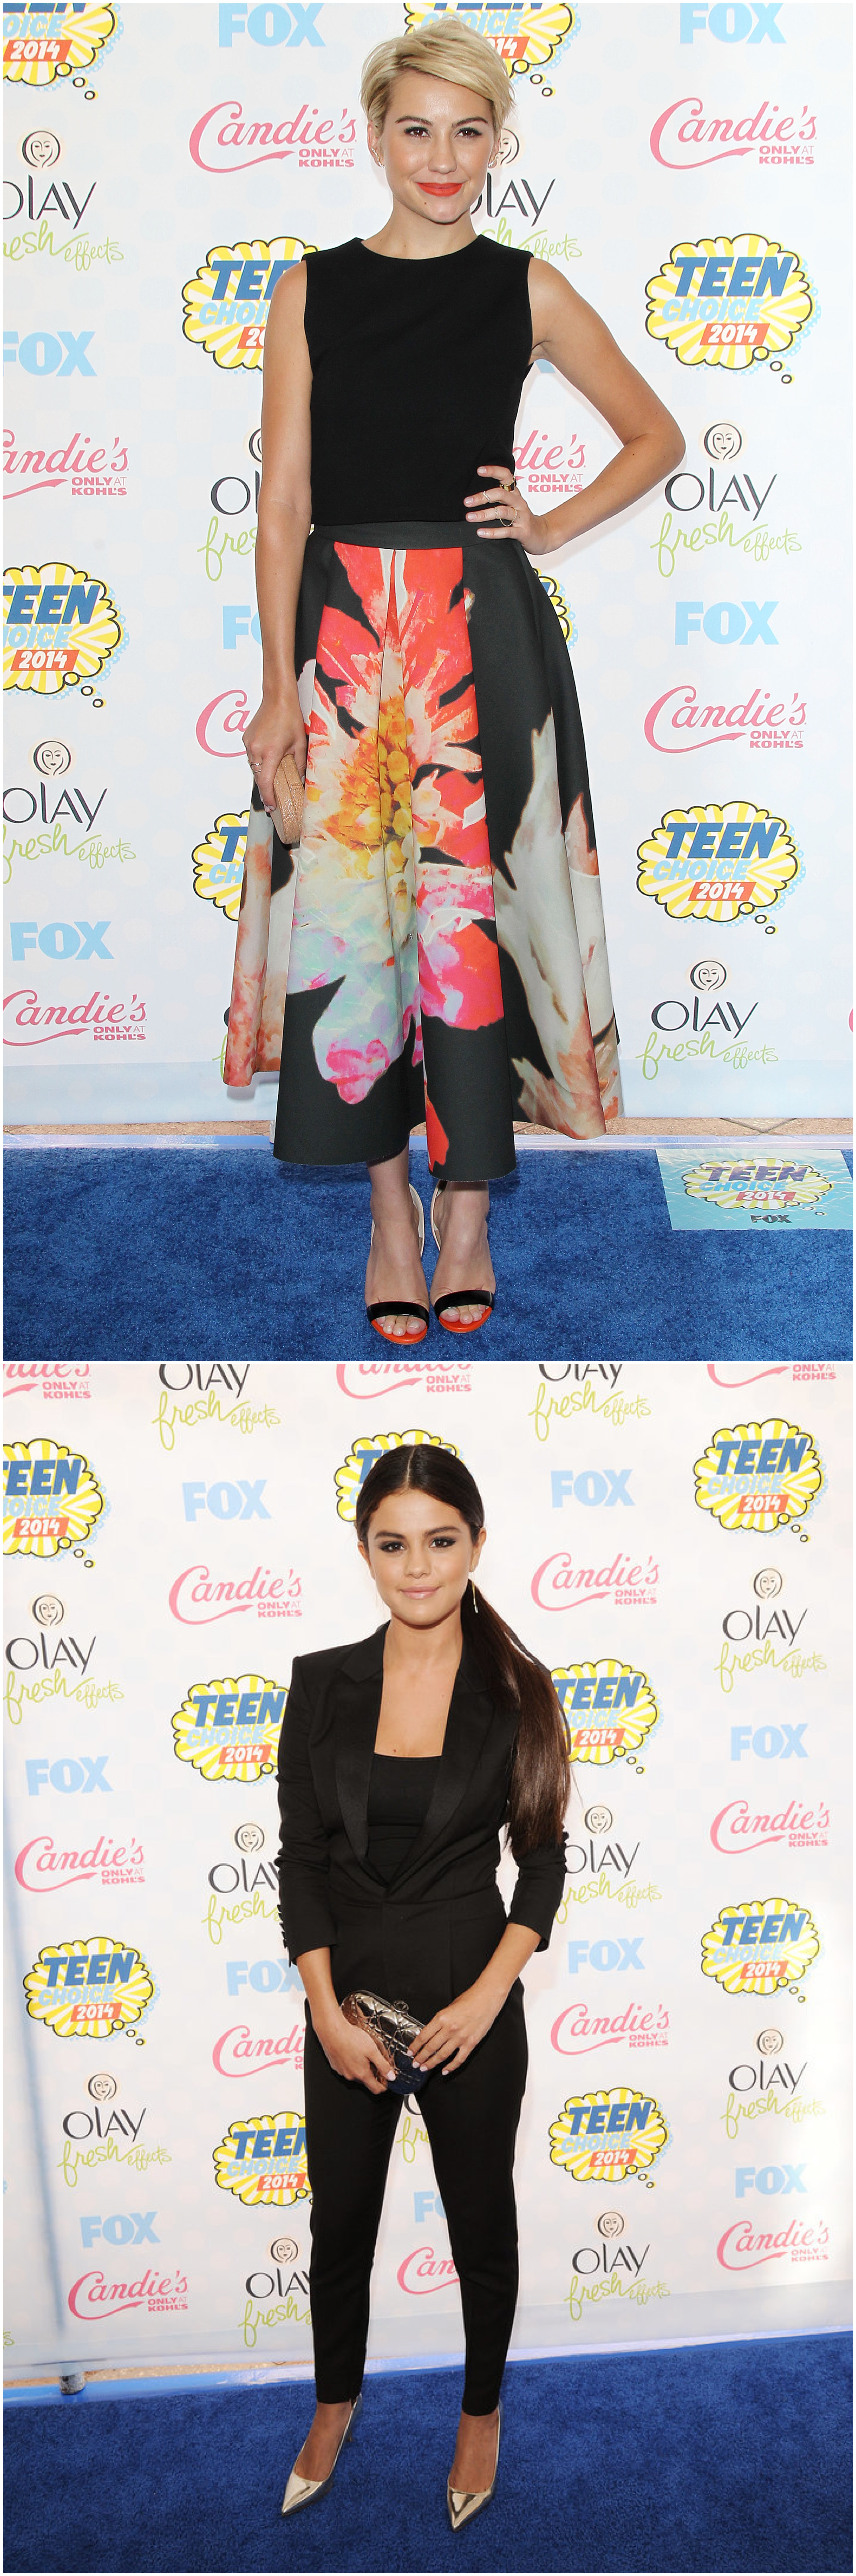 Dress Inspiration: 2014 Teen Choice Awards